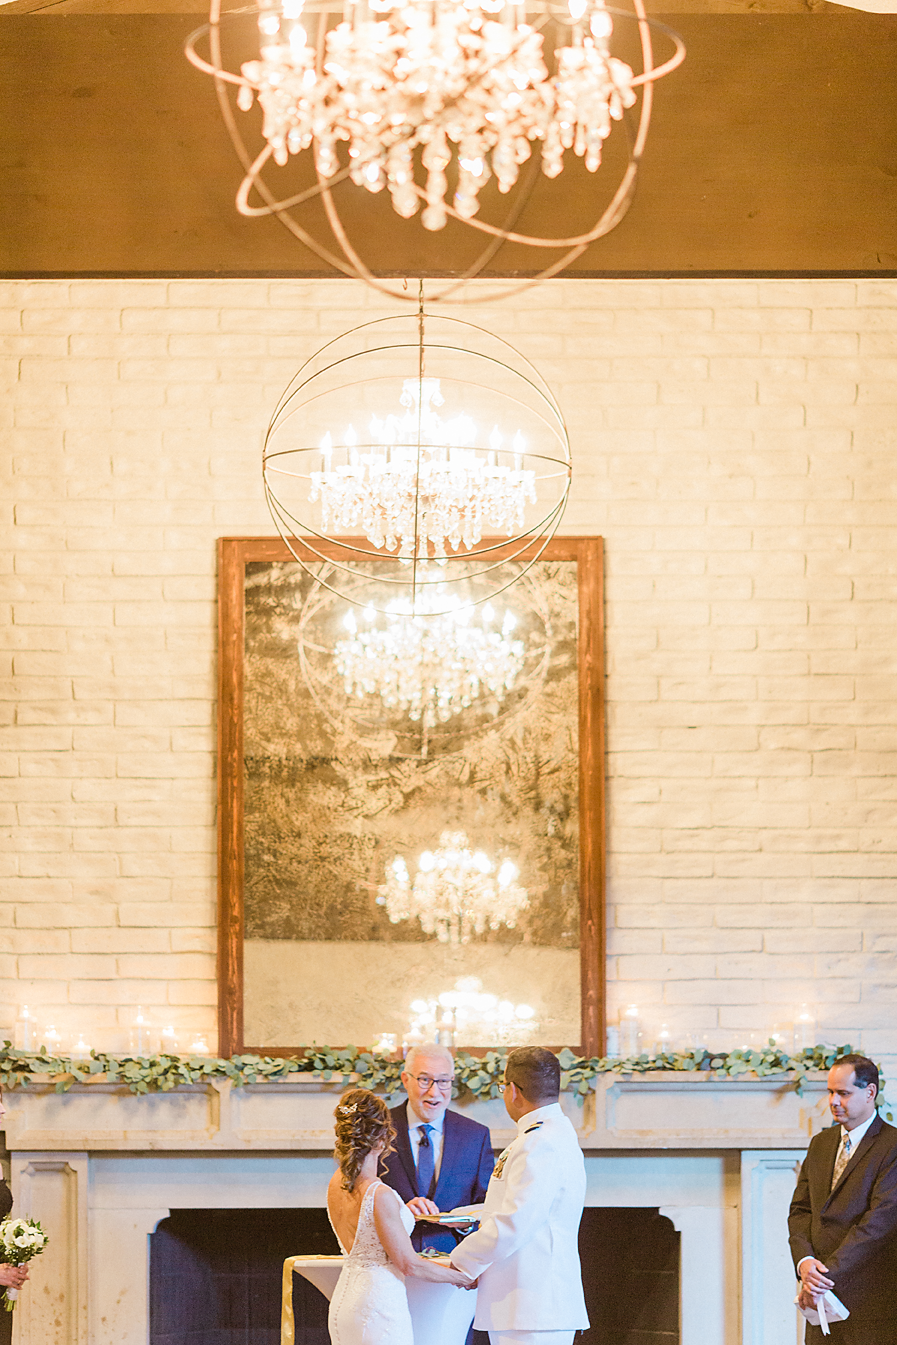 Dallas Wedding photographer Las Colinas Country Club ceremony Kate Marie Portraiture 3.png